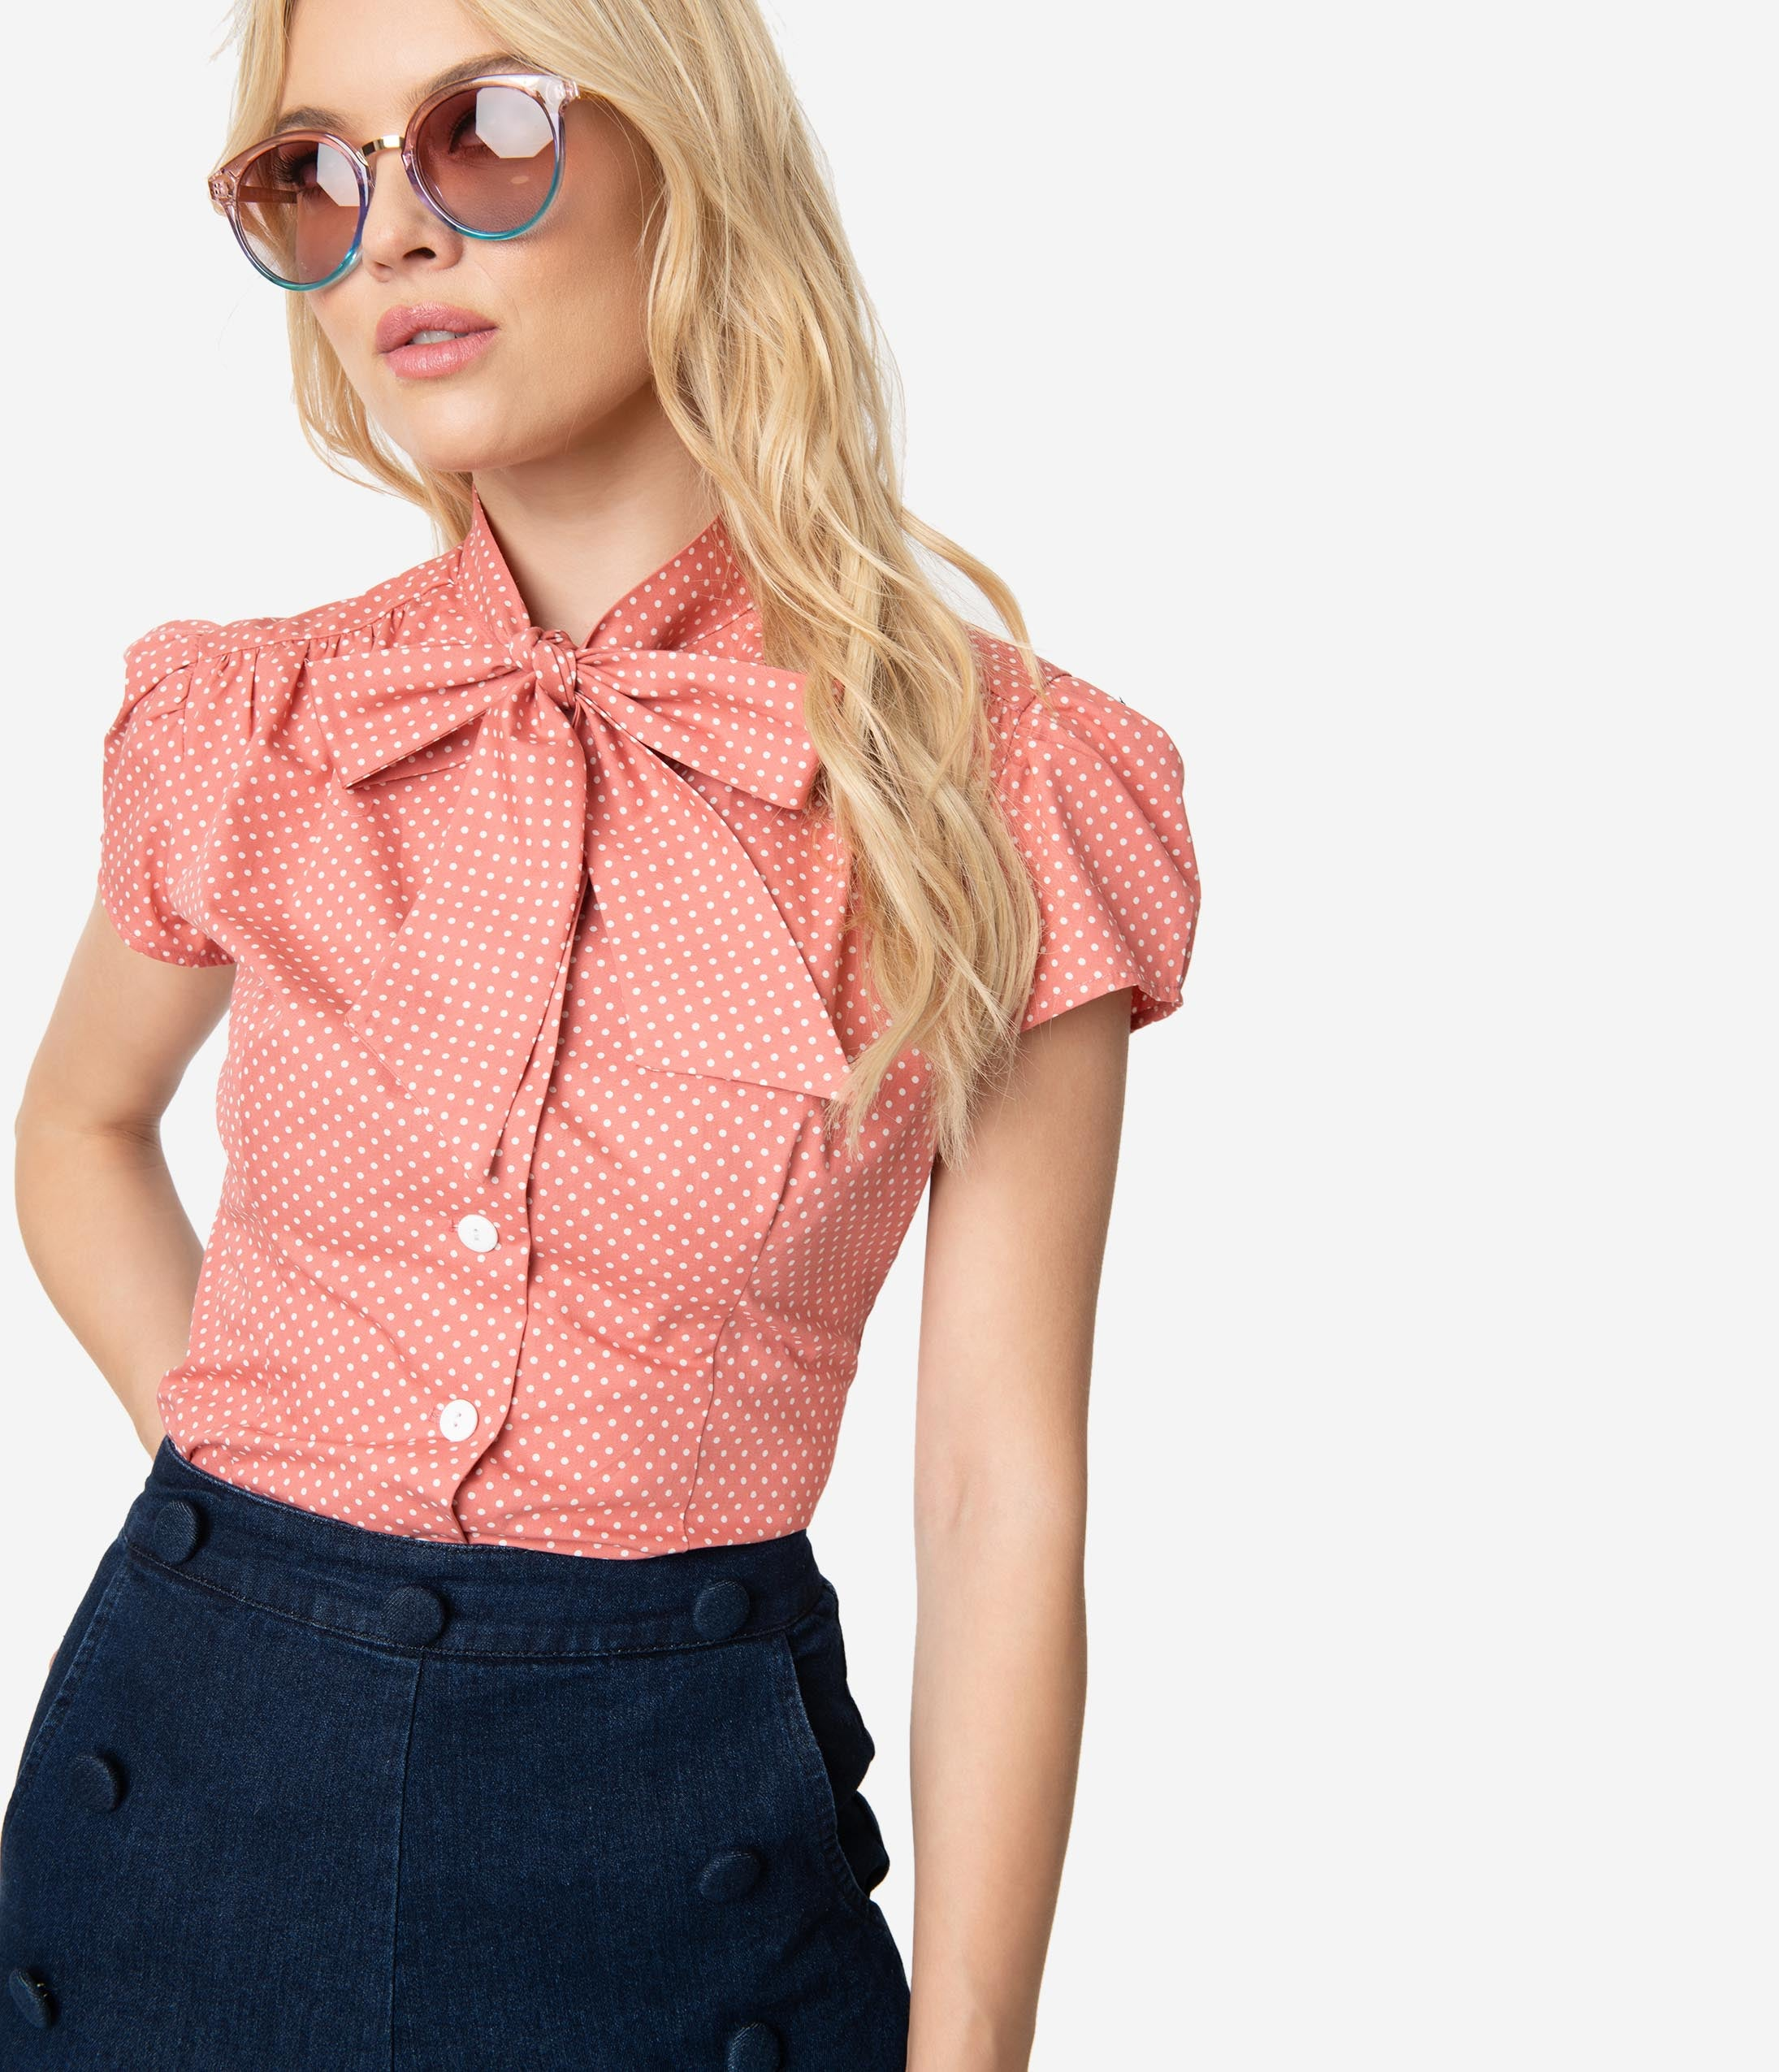 Women's 70s Shirts, Blouses, Hippie Tops Retro Solid Rose Pink  White Pin Dot Cap Sleeve Estelle Blouse $68.00 AT vintagedancer.com